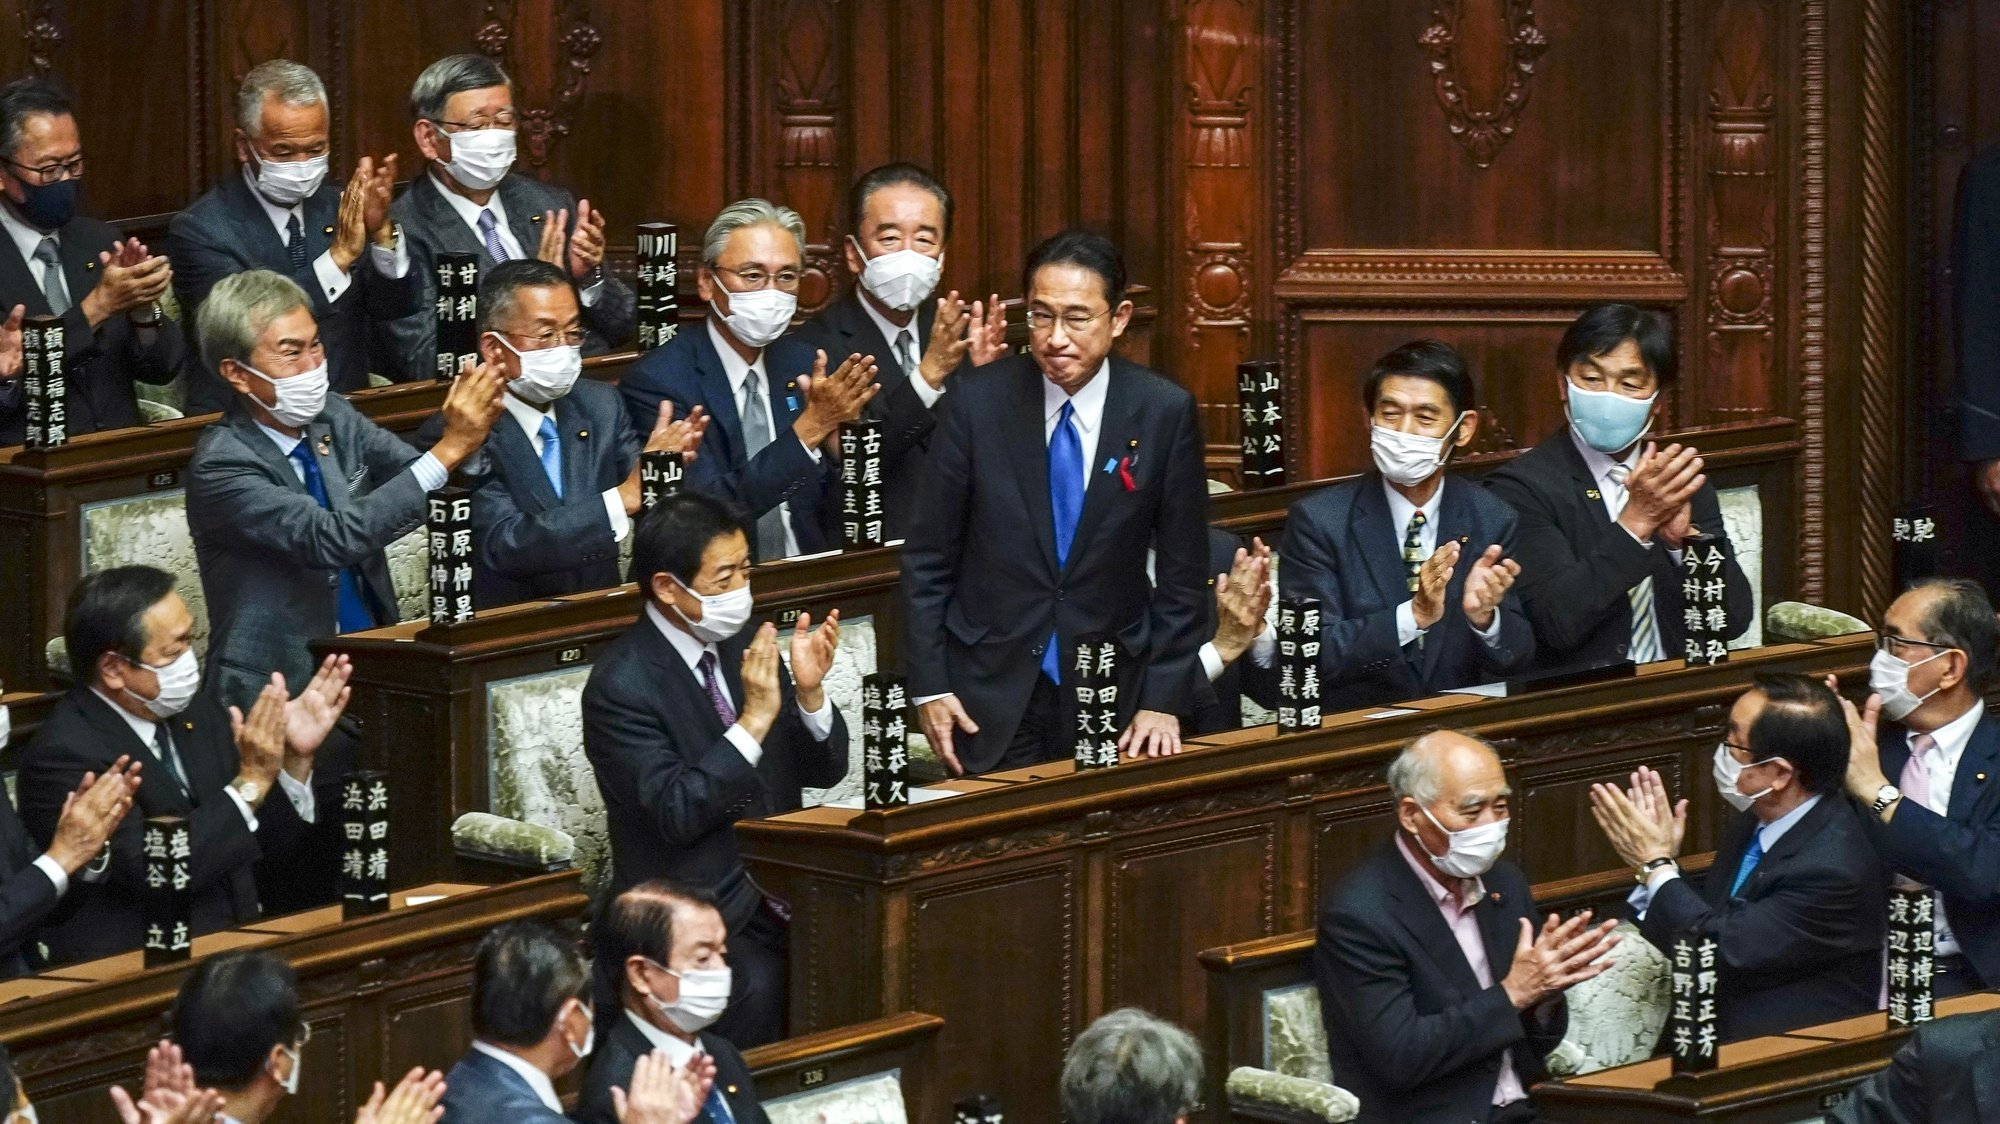 epa09504875 Fumio Kishida (C) is celebrated by his fellow lawmakers after being elected as new Prime Minister, during the general assembly of an extraordinary parliamentary session in Tokyo, Japan, 04 October 2021.  EPA/KIMIMASA MAYAMA